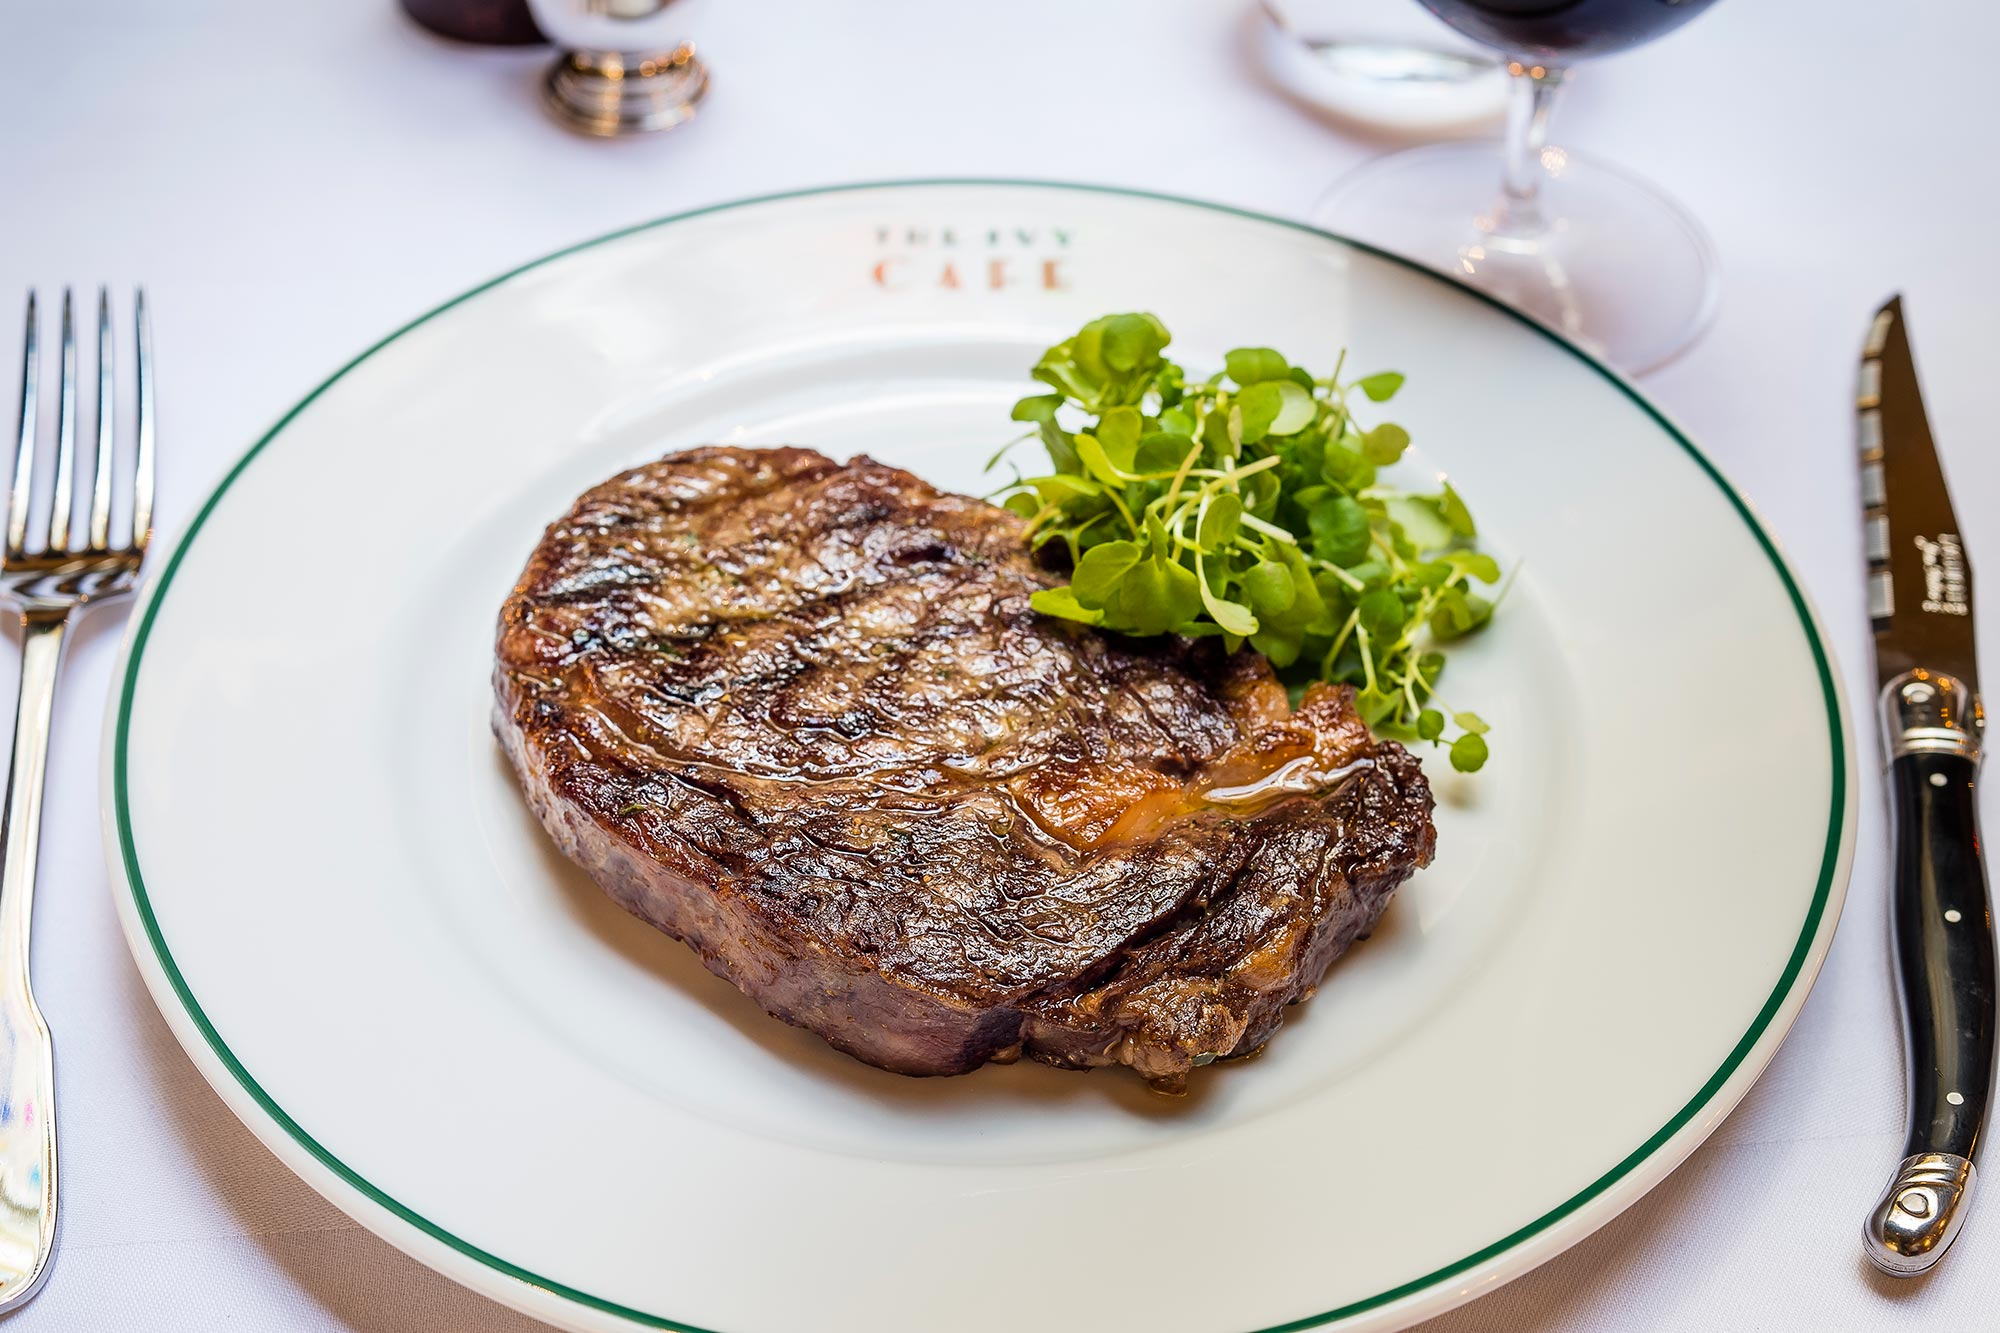 Rib eye steak at The Ivy Harrogate - The Ivy Harrogate